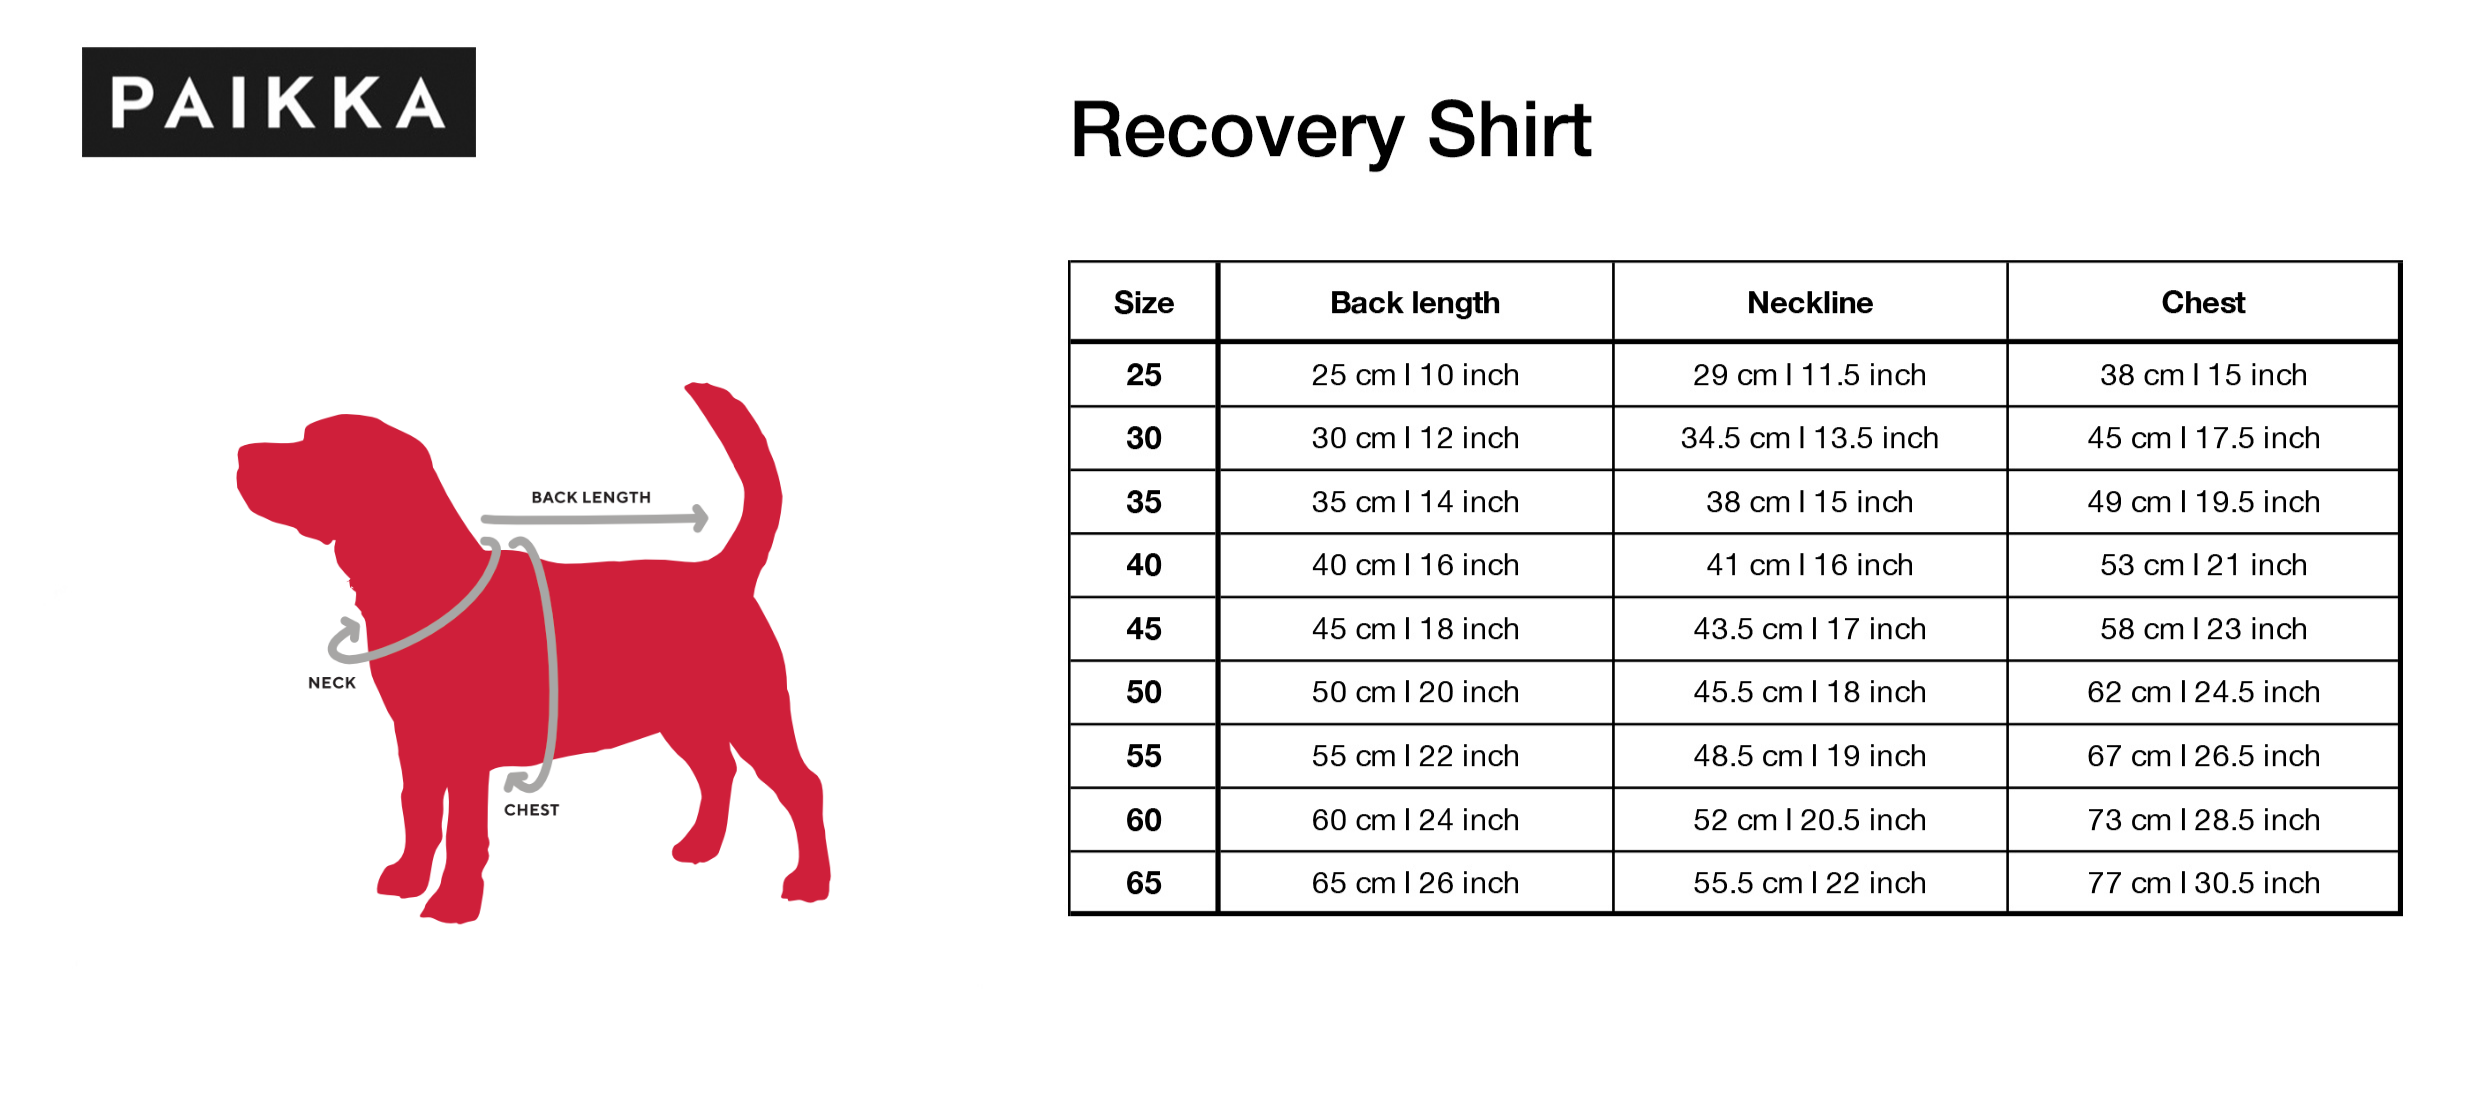 Size guide for Paikka dog recovery shirt.